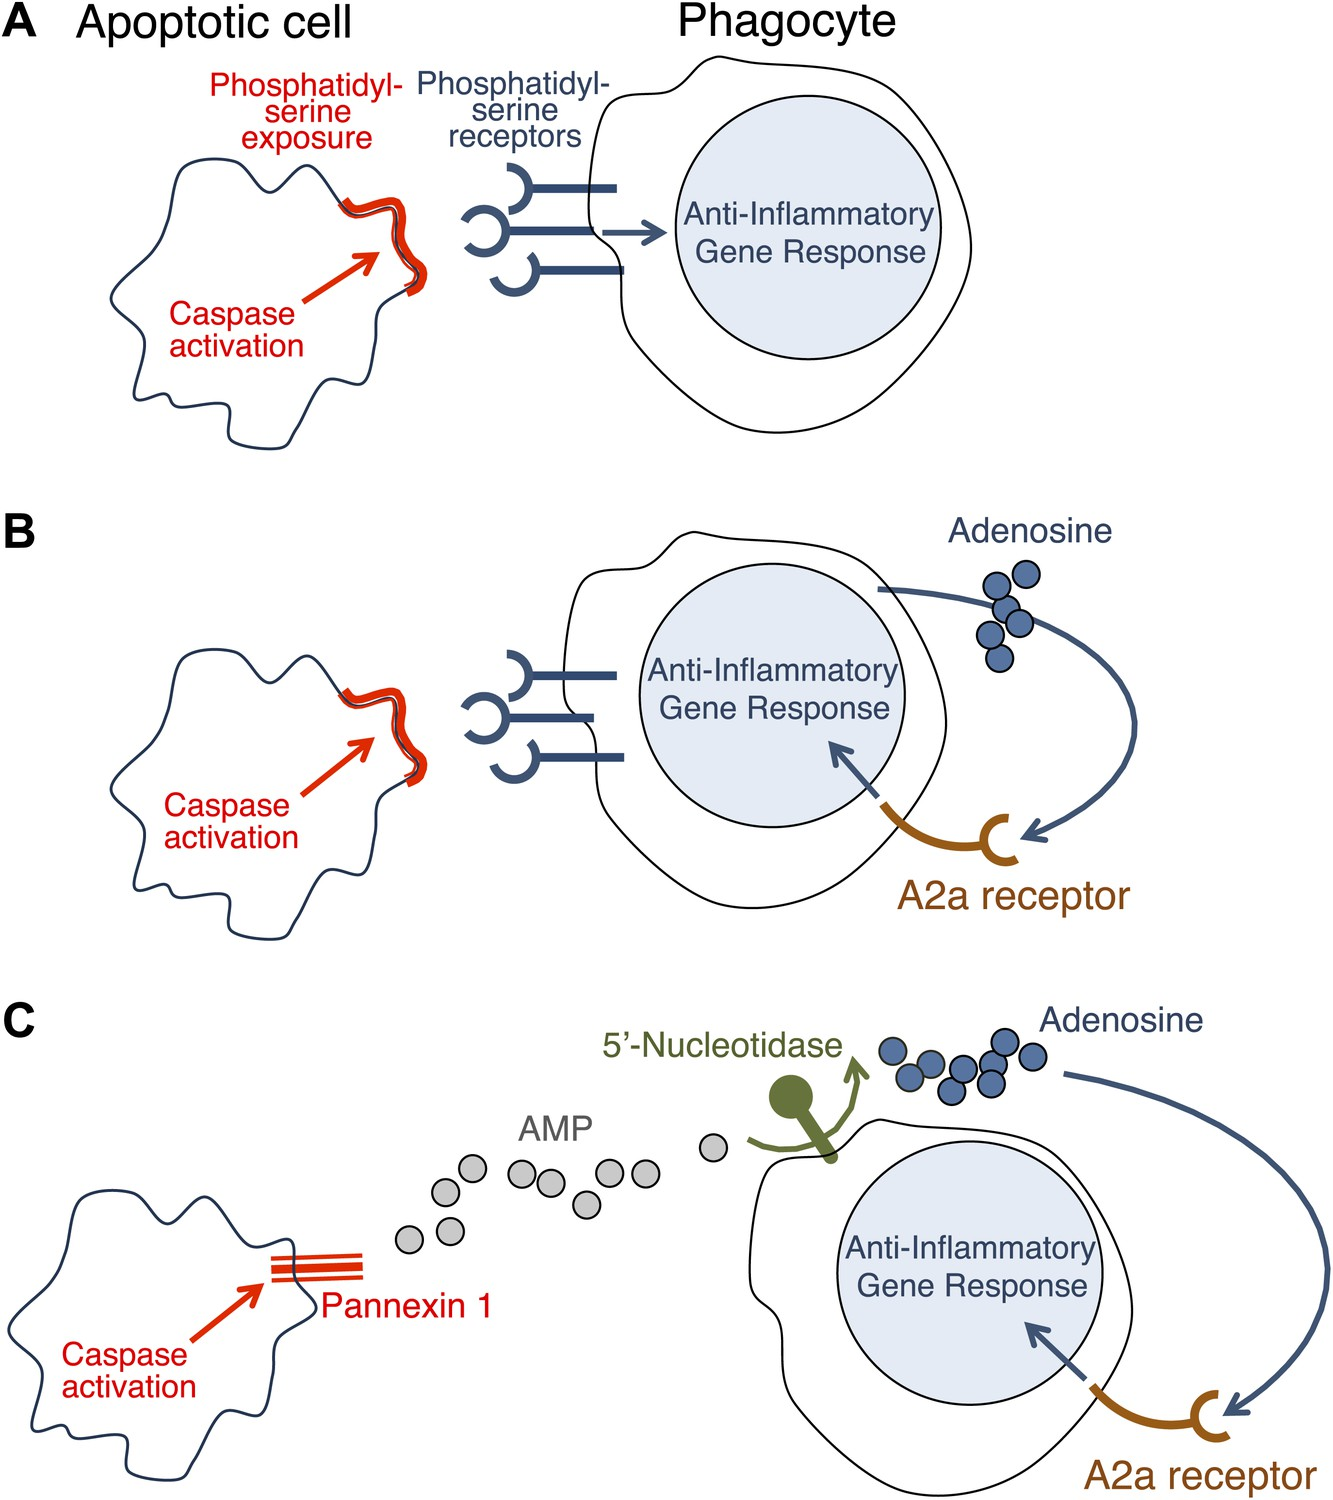 hight resolution of how do apoptotic cells trigger an anti inflammatory response in phagocytes